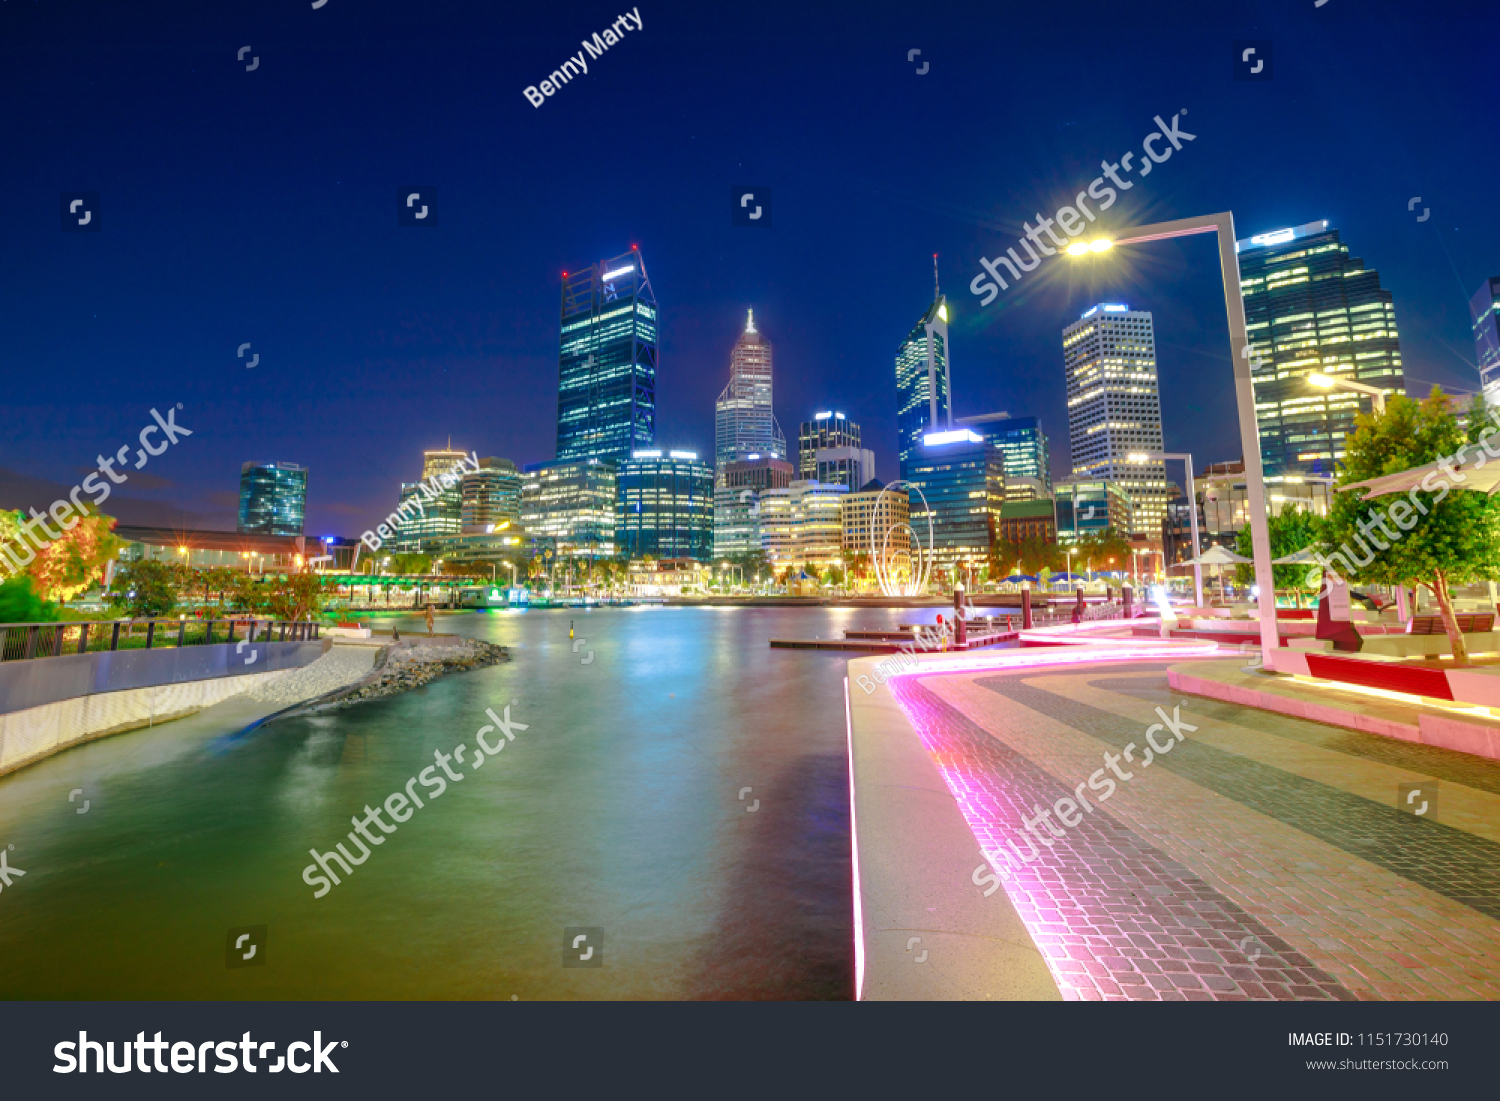 Lighting Stores Perth Wa Walkway Night Lighting Elizabeth Quay Marina Stock Photo Edit Now